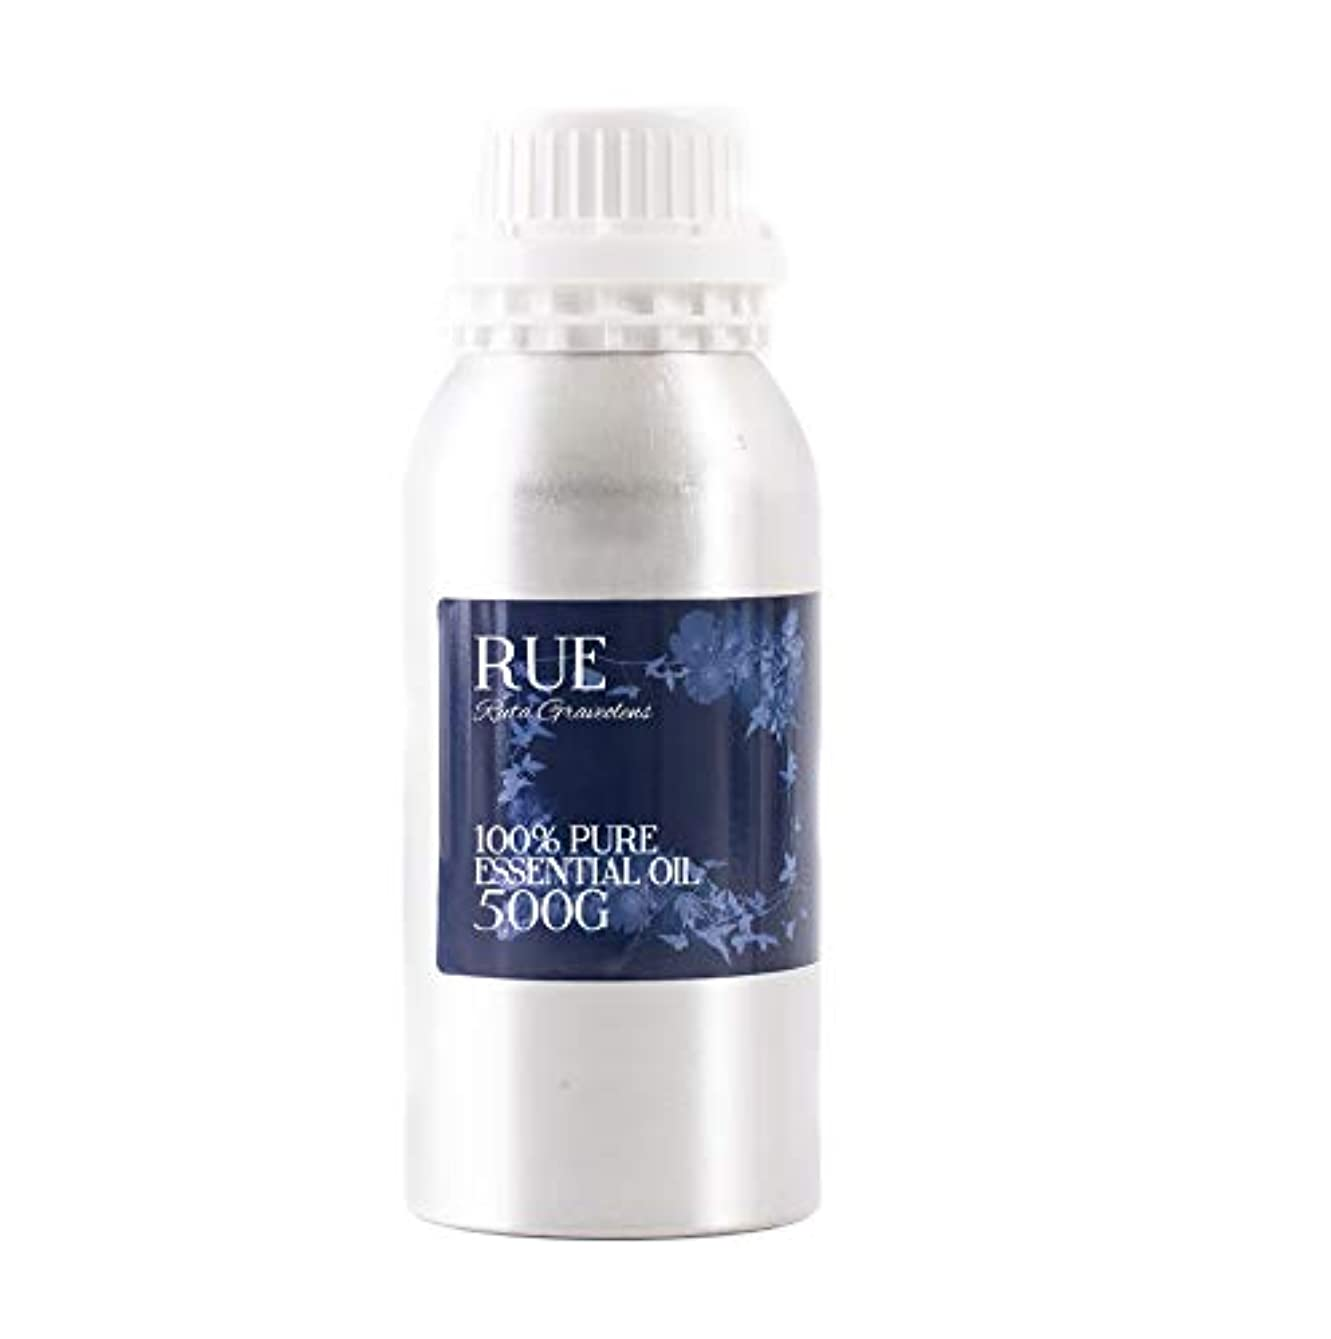 Mystic Moments | Rue Essential Oil - 500g - 100% Pure